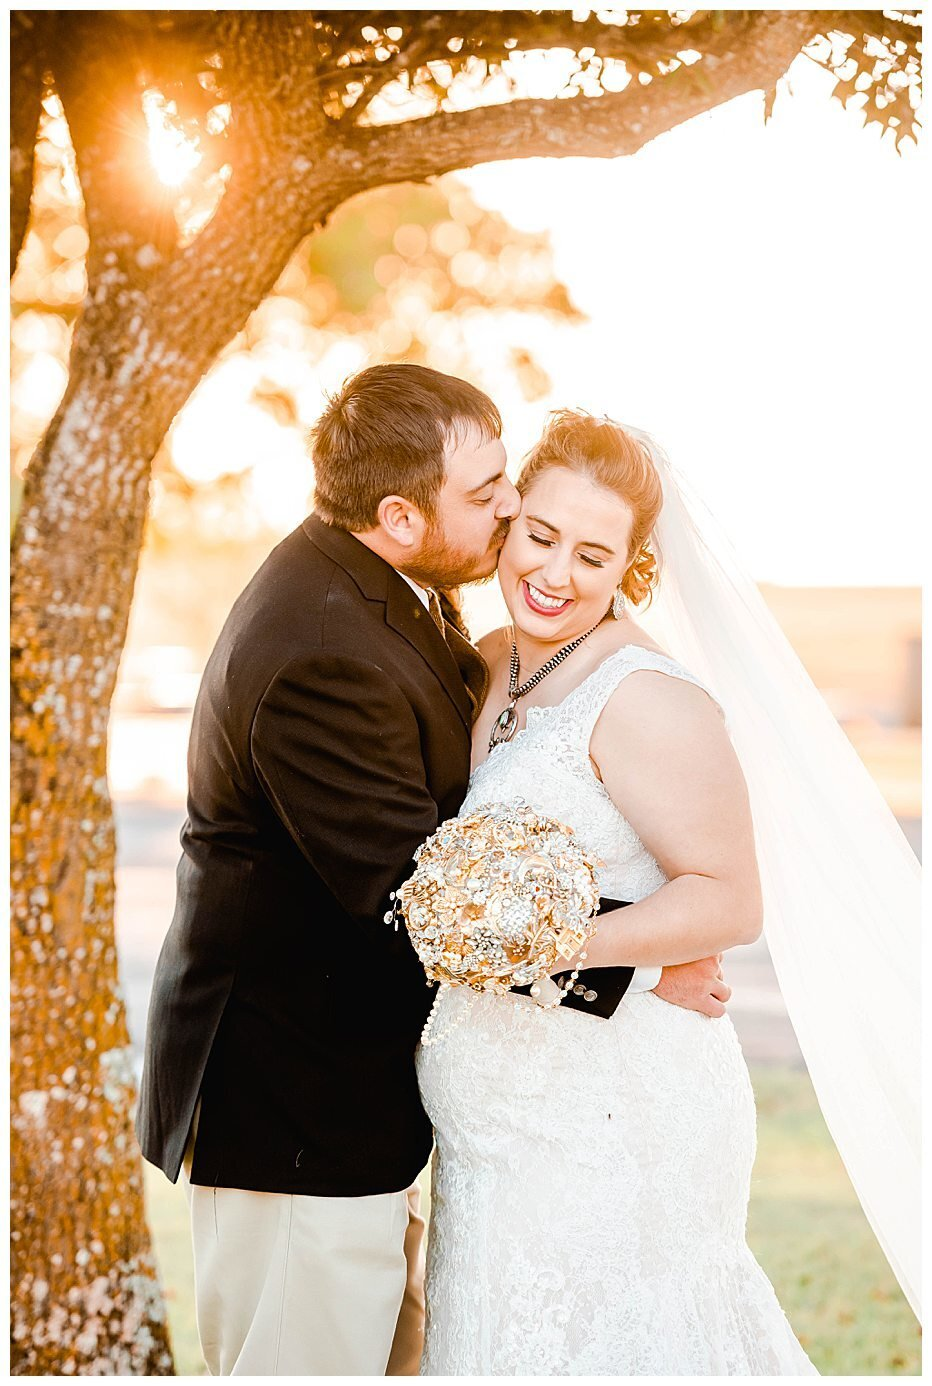 Under the Sun Photography | San Antonio, TX | Texas Wedding Photographer_0279